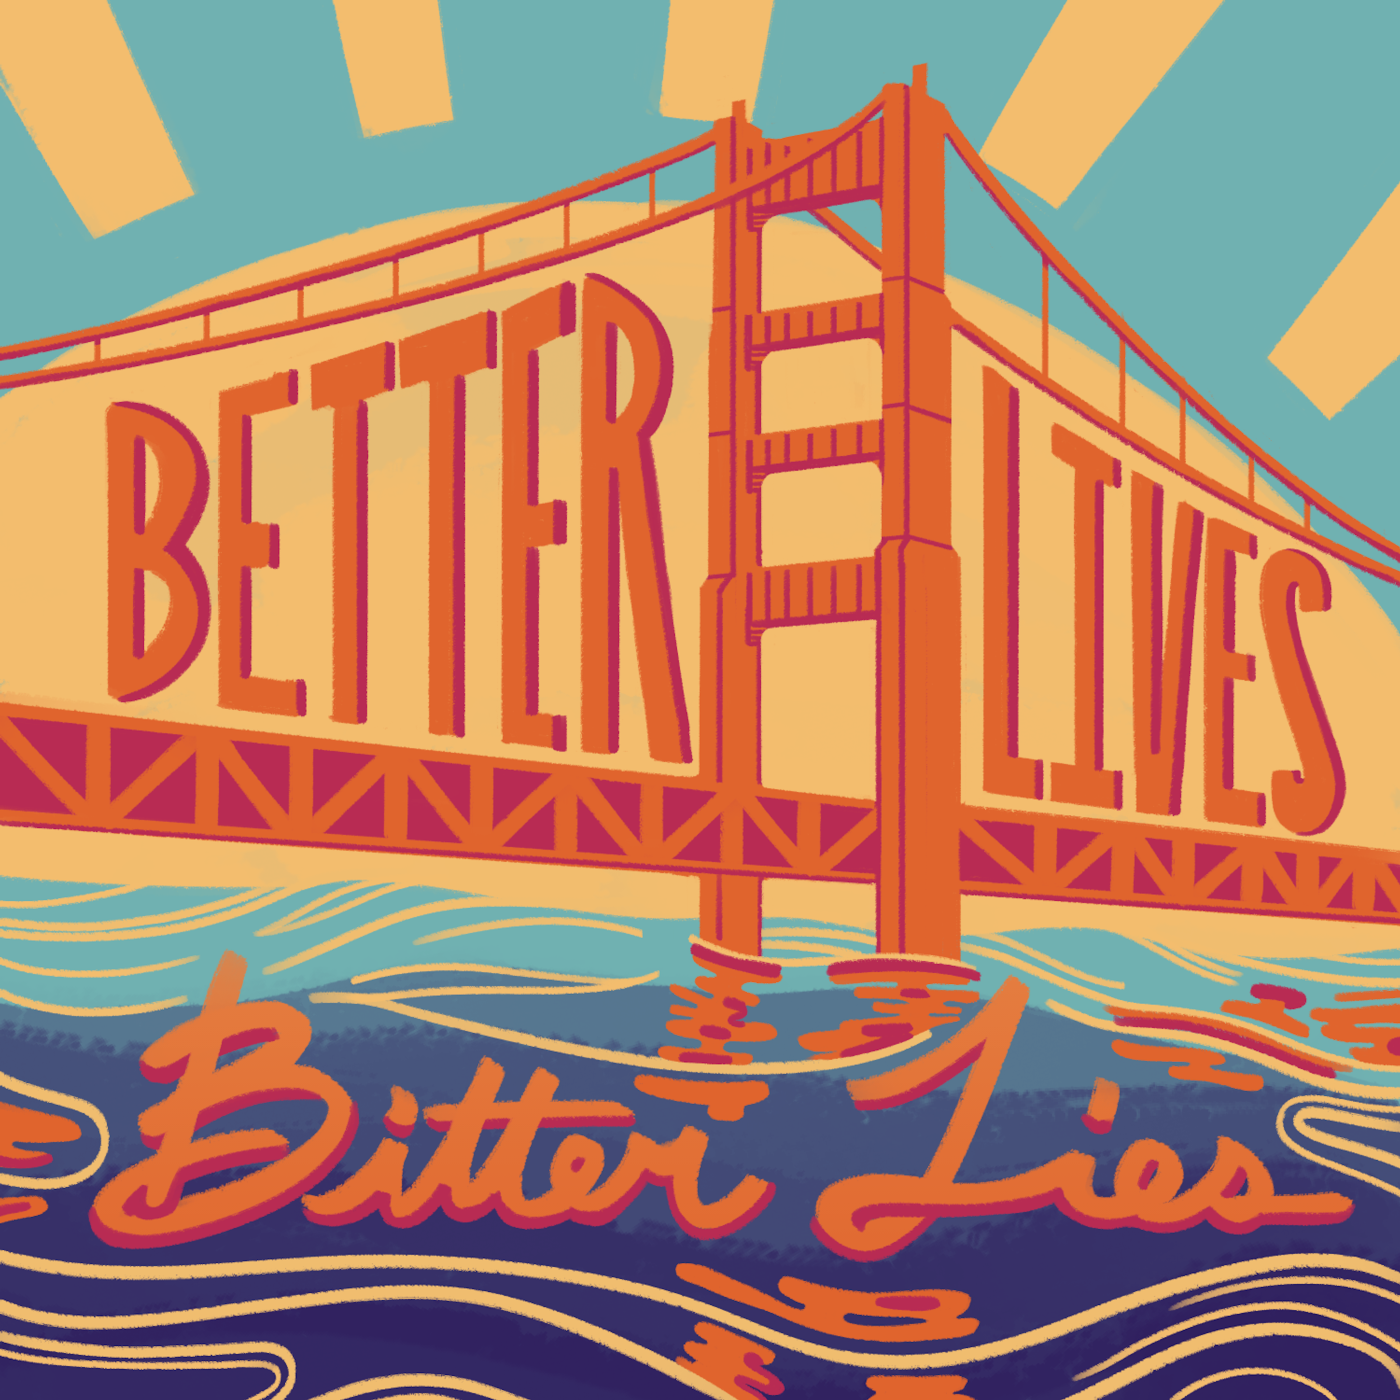 Colorful graphic of a gold bridge over blue water with lettering across the bridge, and under it